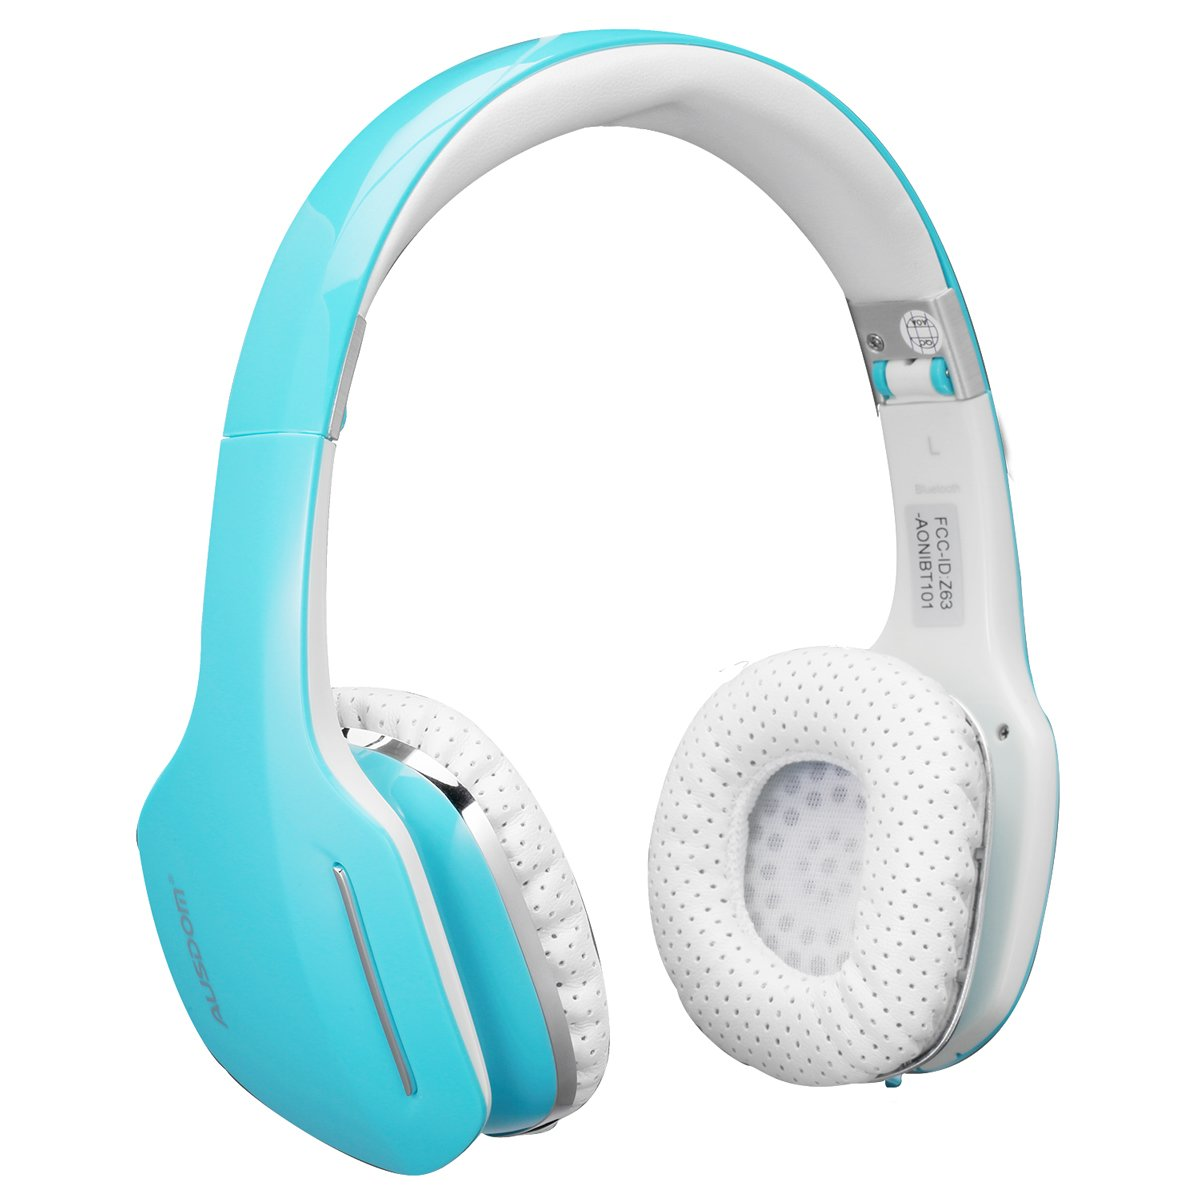 AUSDOM Wireless On-Ear Headphones with Microphone – Bluetooth Headset with Foldable and Lightweight Design for Use with Cell Phones, Laptop Computers and other Bluetooth Devices (Blue)